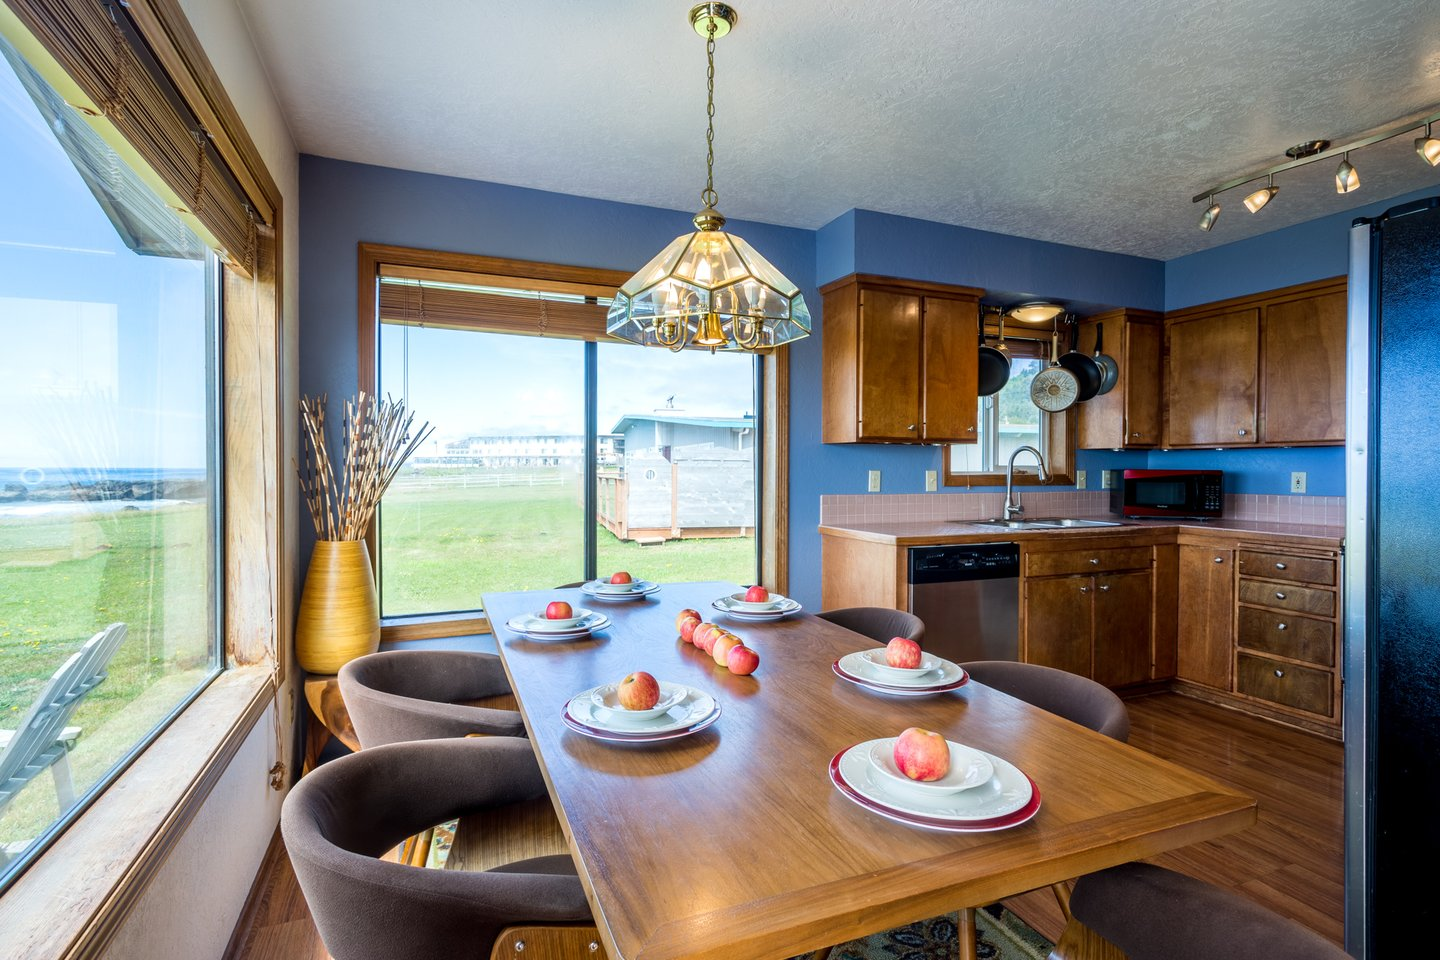 The charming kitchen enjoys an anmazing ocean view as well.